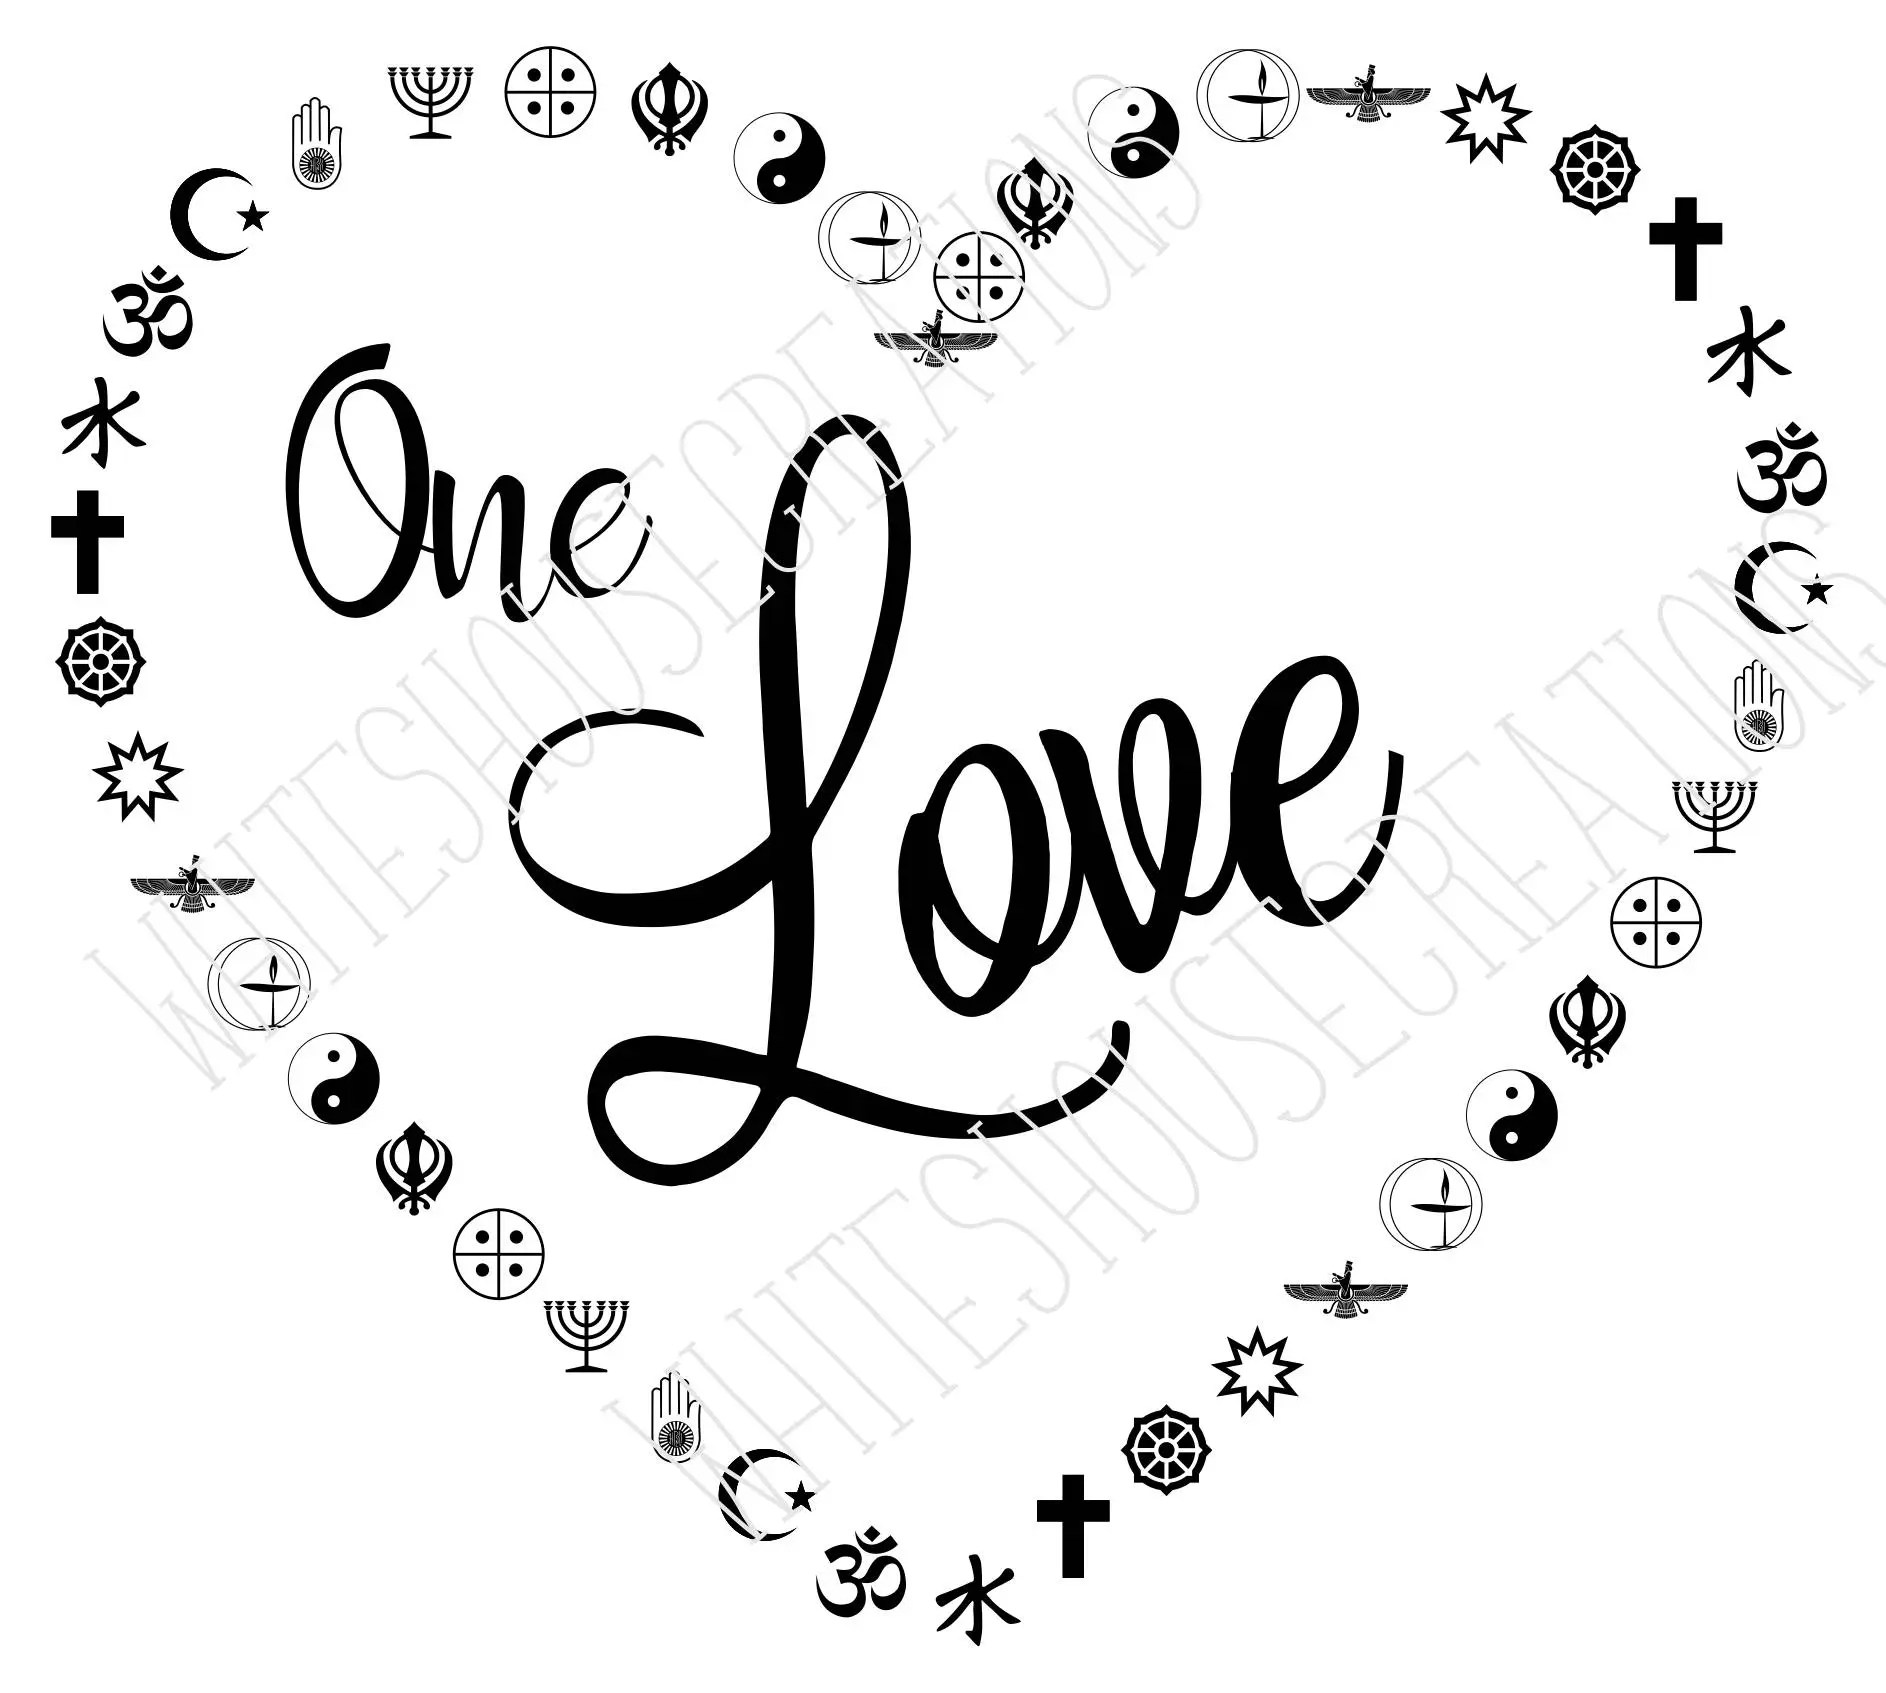 One love in multi religious symbols coexist svg dxf eps for this is a digital file